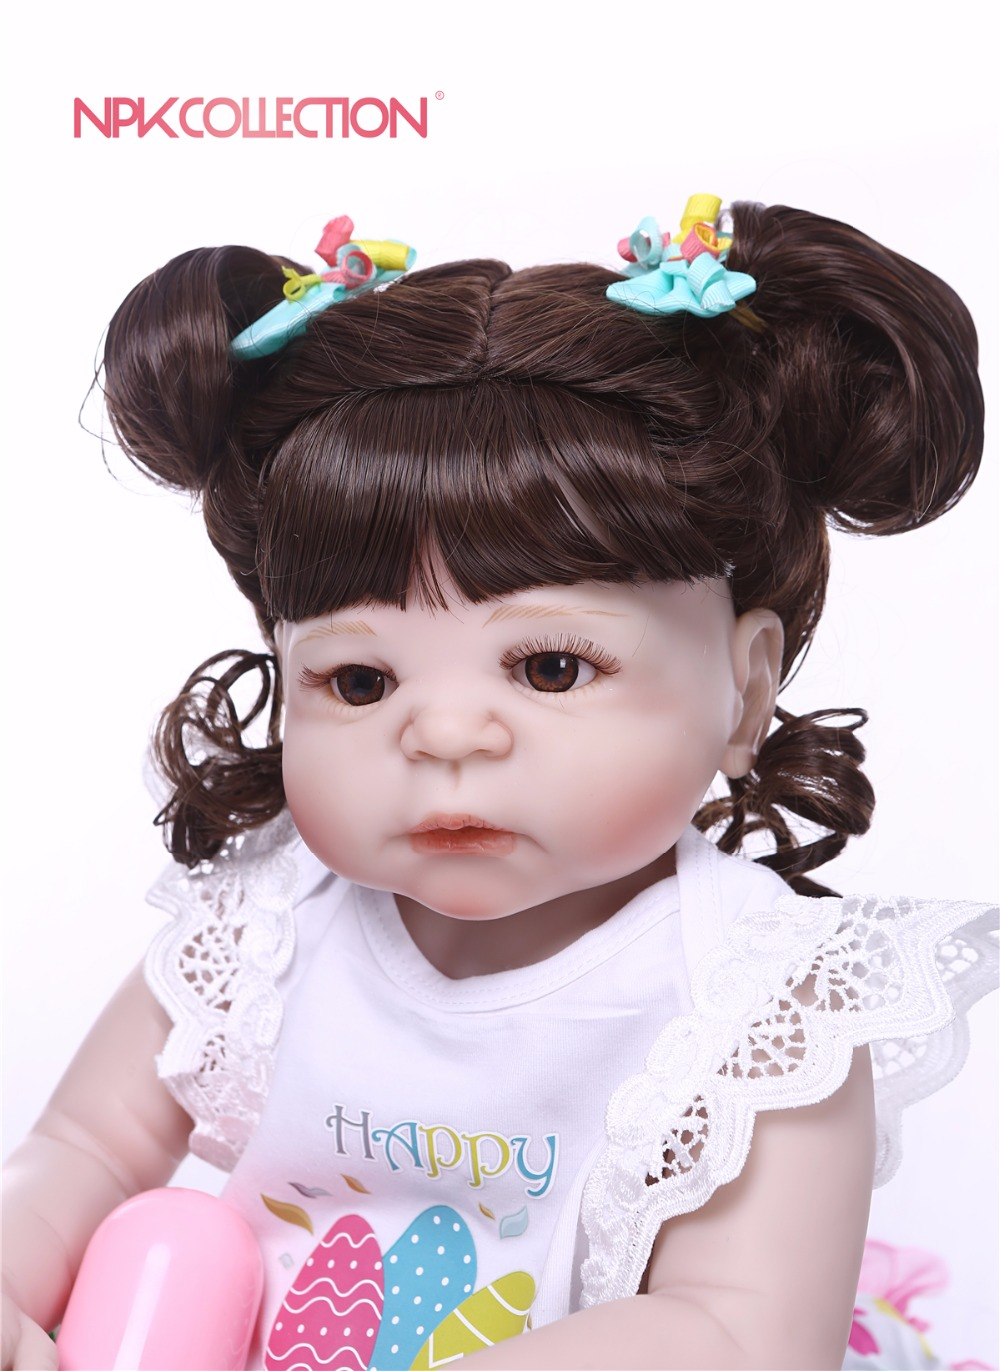 Npk Real New Hairstyle 57cm Full Body Silicone Girl Reborn Babies